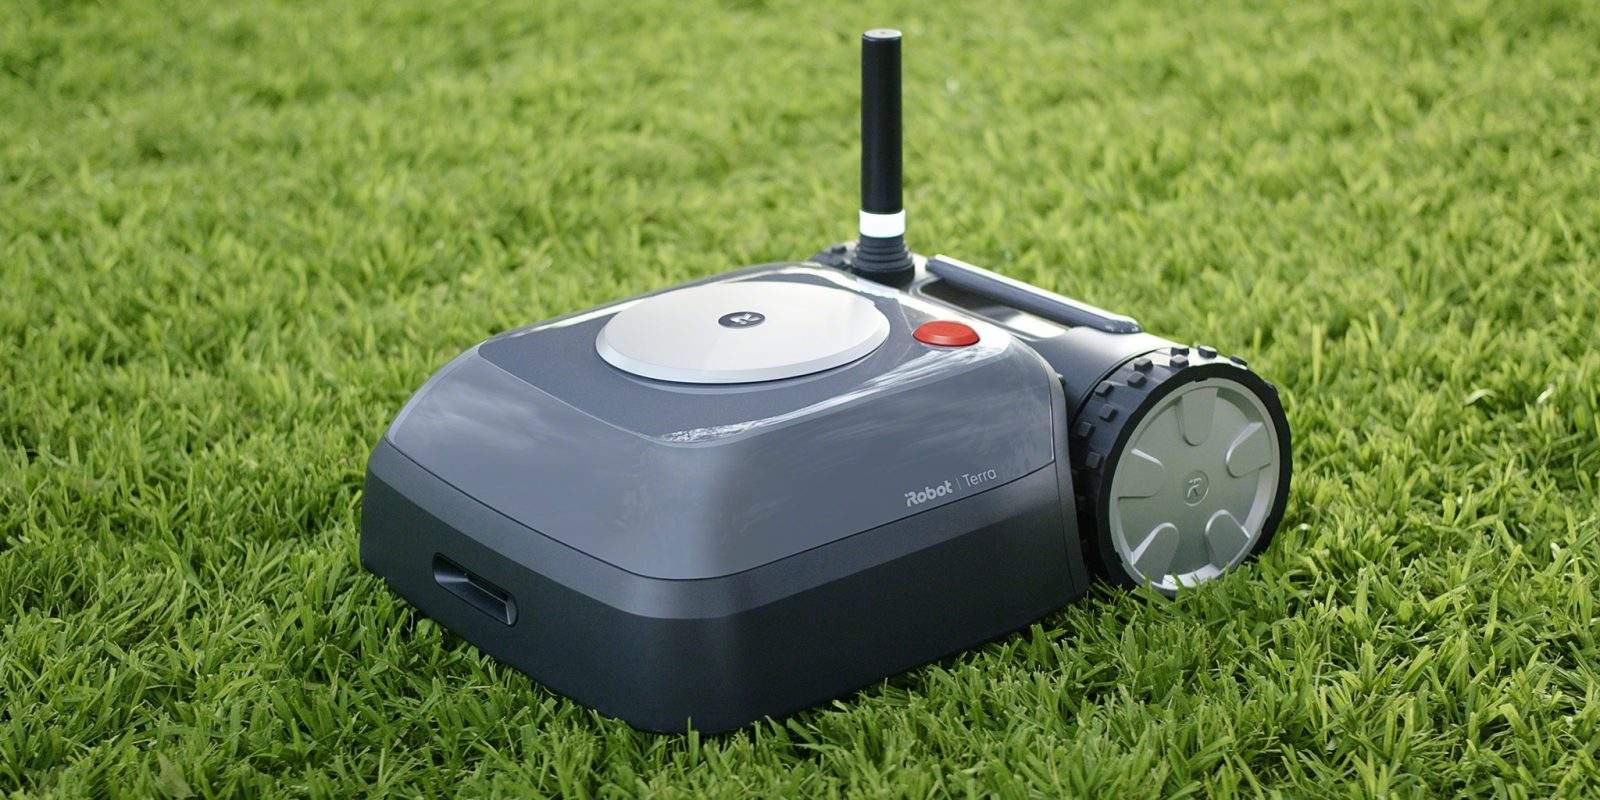 iRobot Terra arrives as the brand's first robotic lawn mower